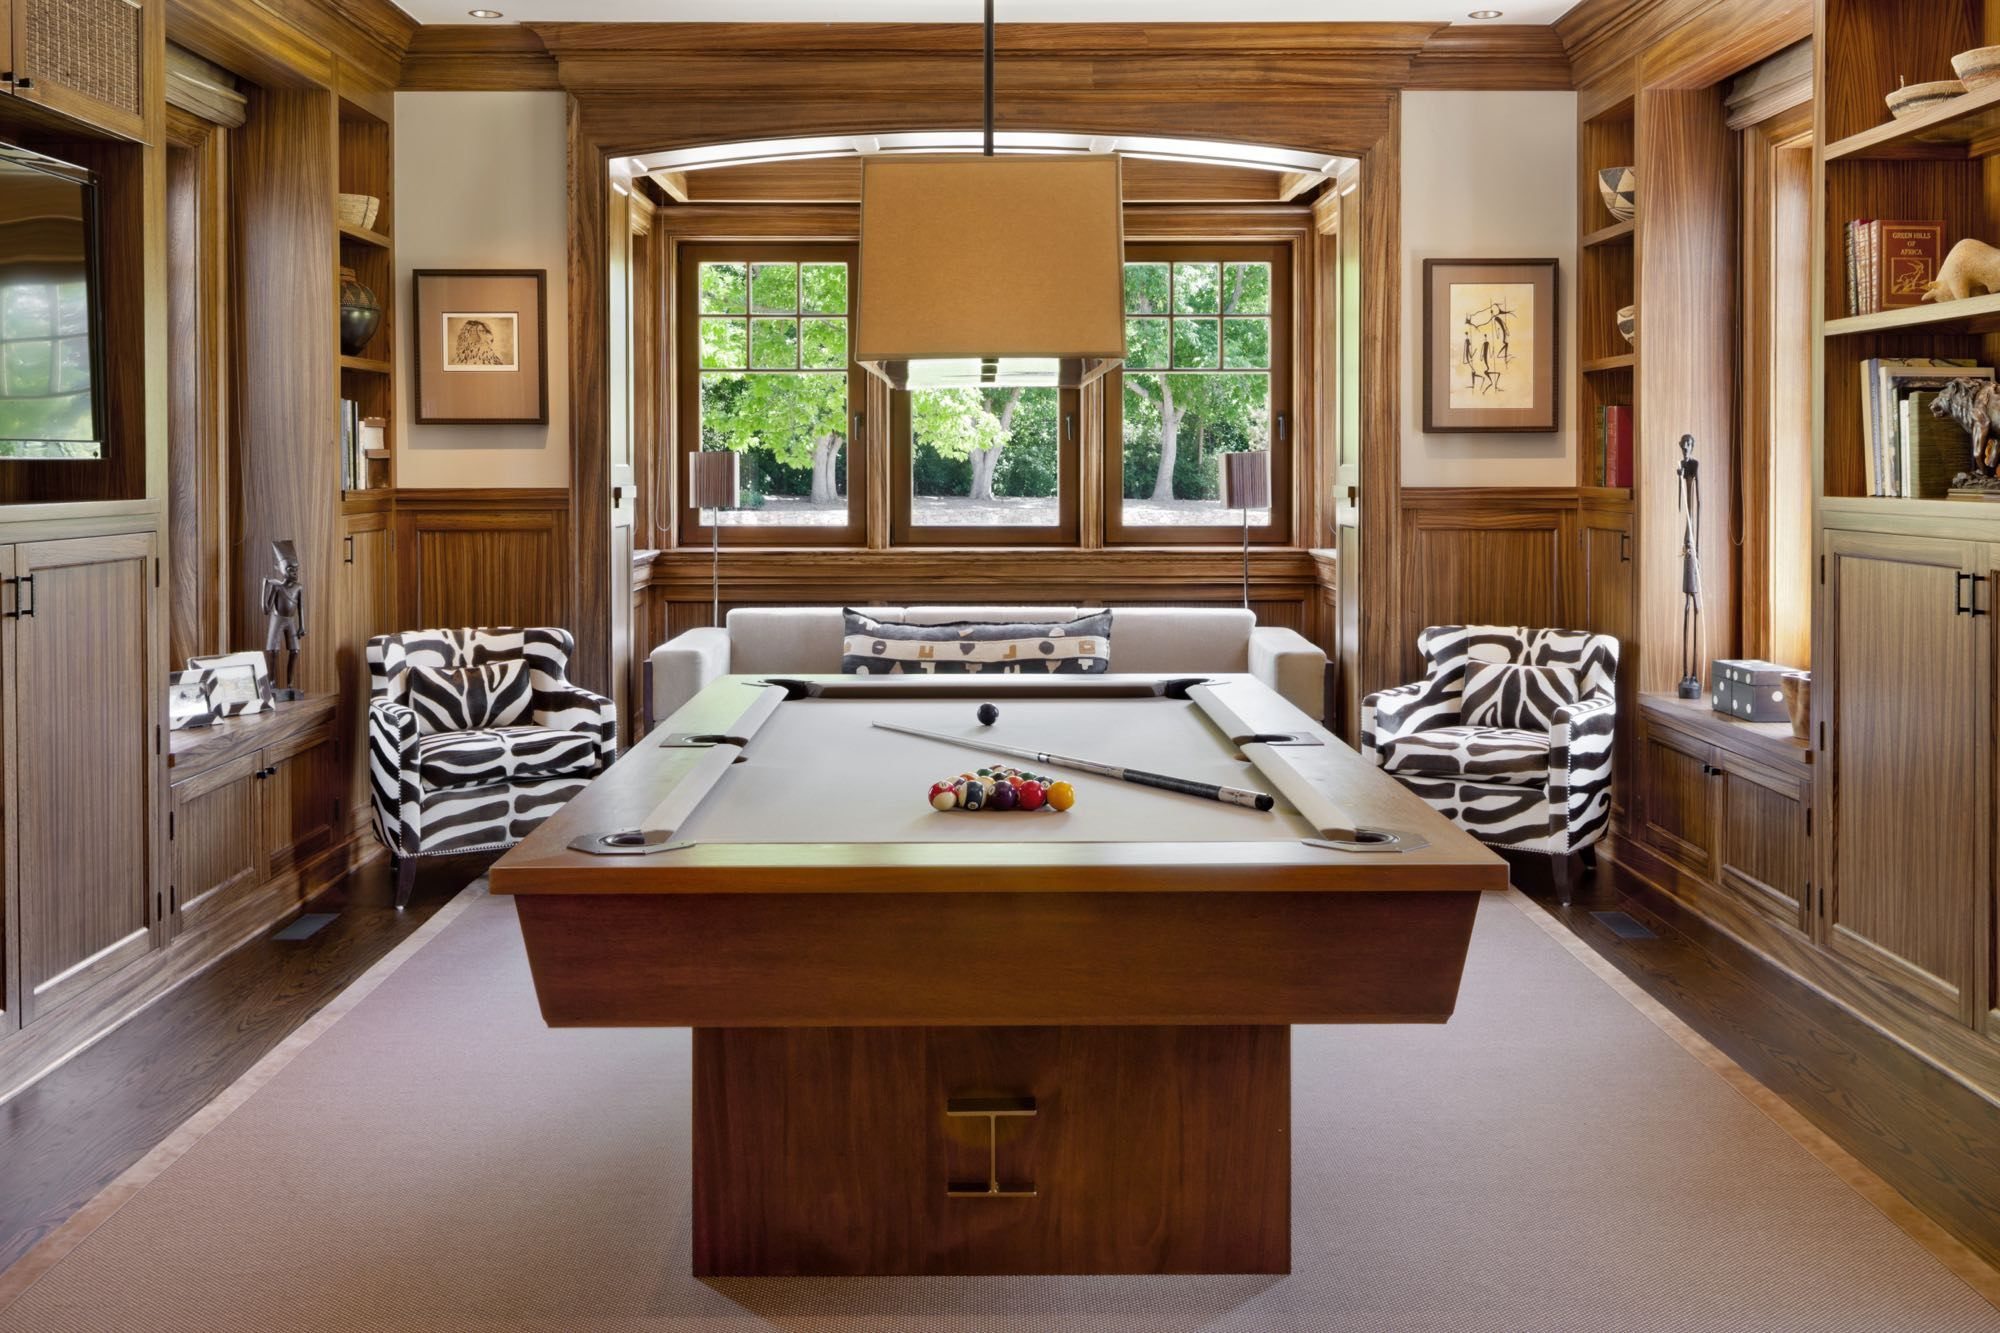 Denver with images furniture details home shingle style